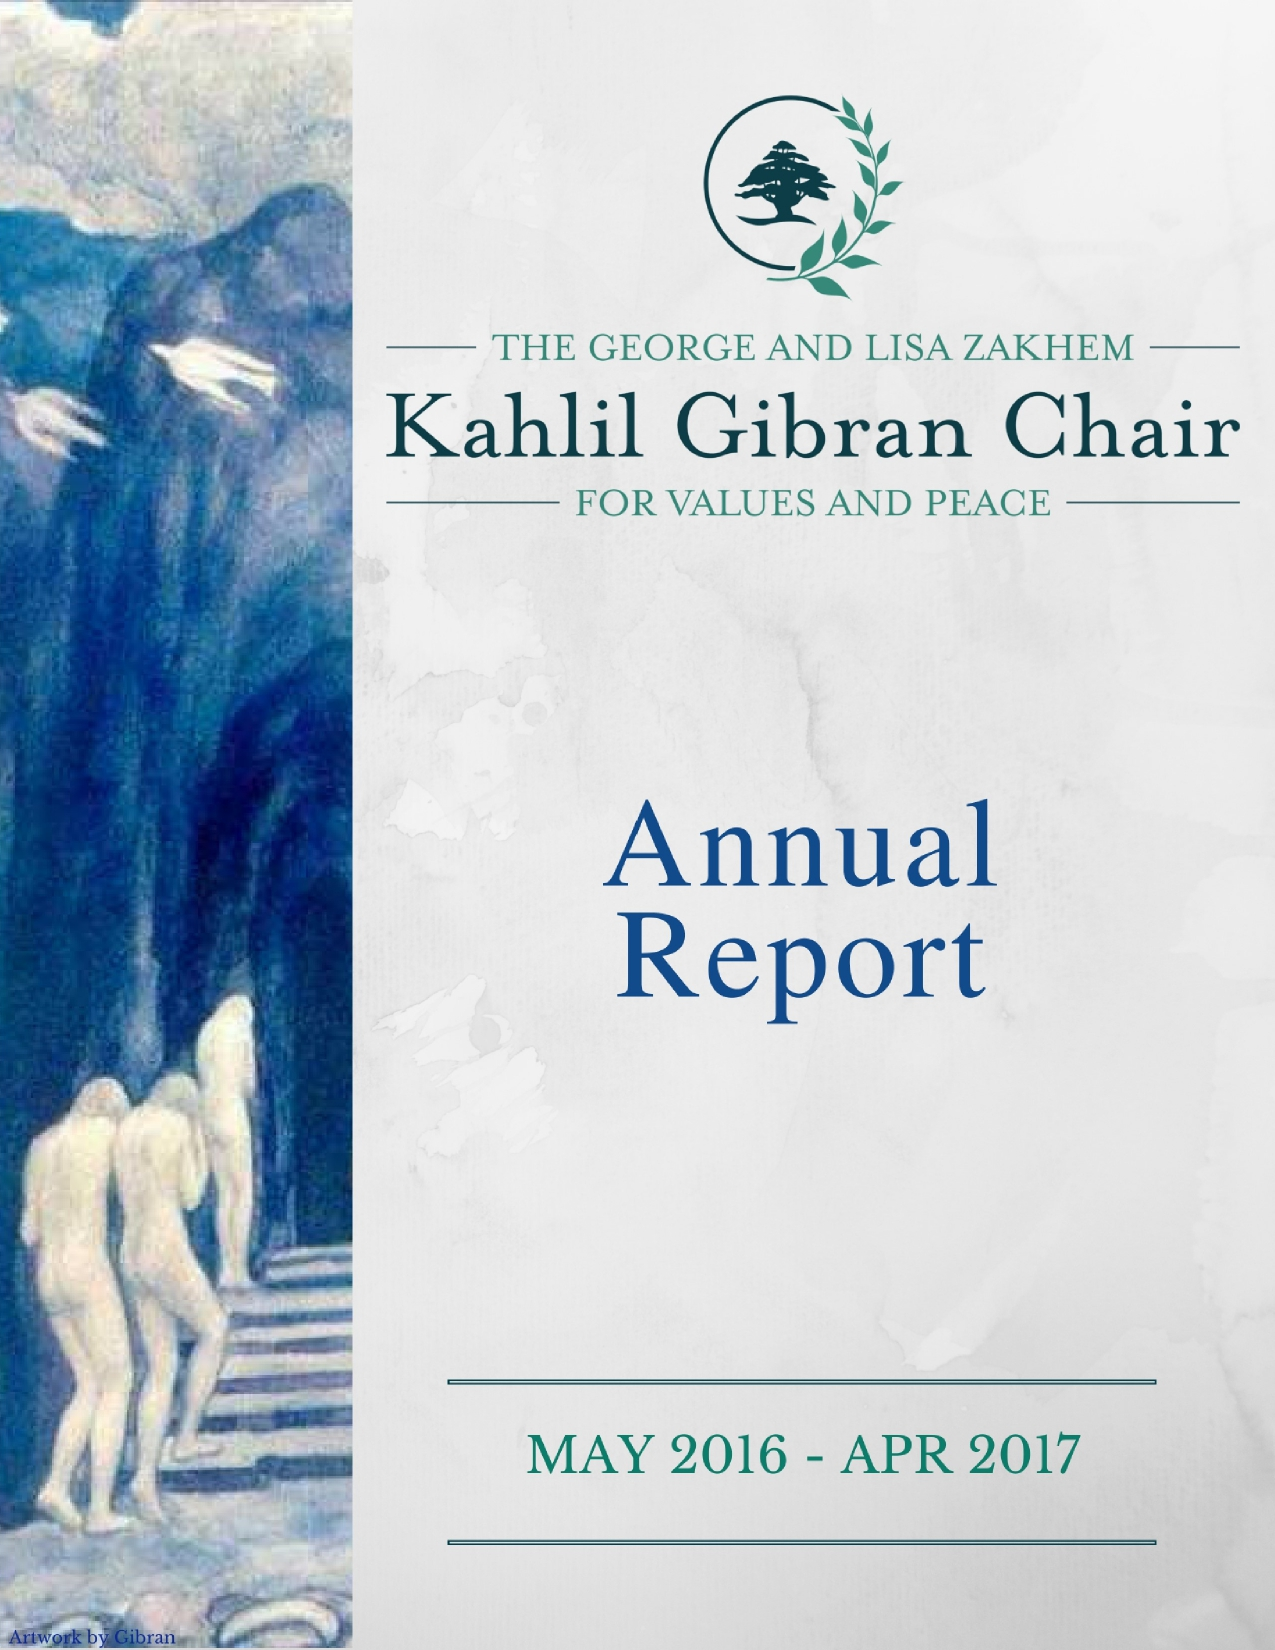 Annual Report, The George and Lisa Zakhem Kahlil Gibran Chair for Values and Peace, May 2016 - April 2017.